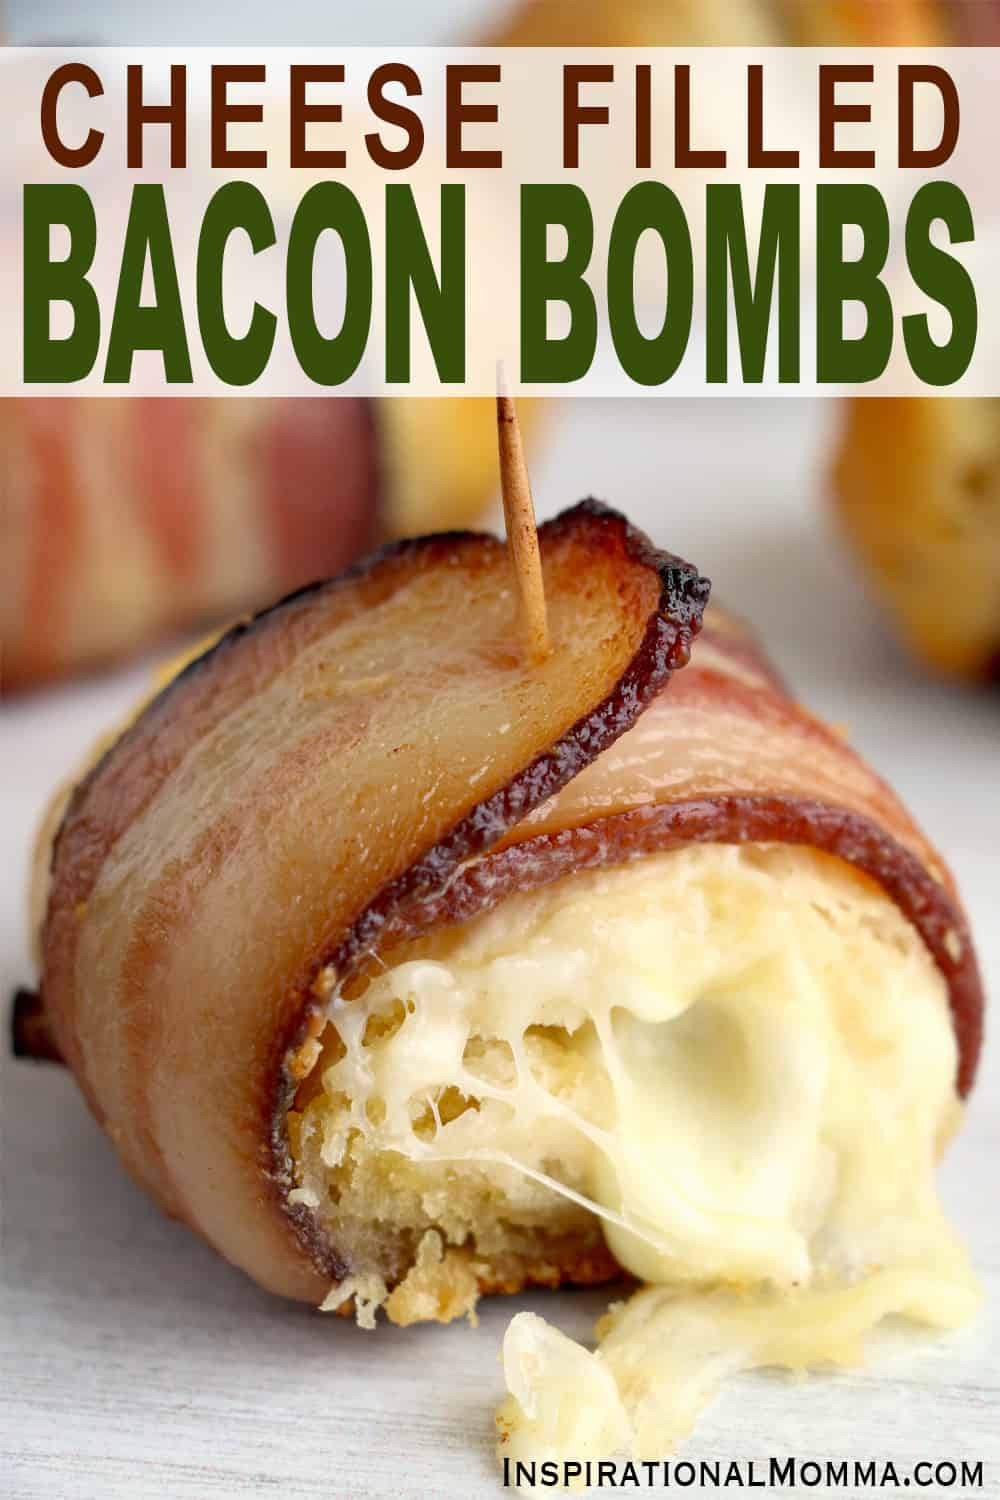 Tasty, fast, and delicious Bacon Wrapped Cheese Bombs are perfectly bite-sized. Filled with cheese, wrapped with bacon, ready to enjoy! #inspirationalmomma #baconwrappedcheesebombs #cheesebombs #baconcheesebombs #cheesefilledbiscuits #appetizers #appetizerrecipes